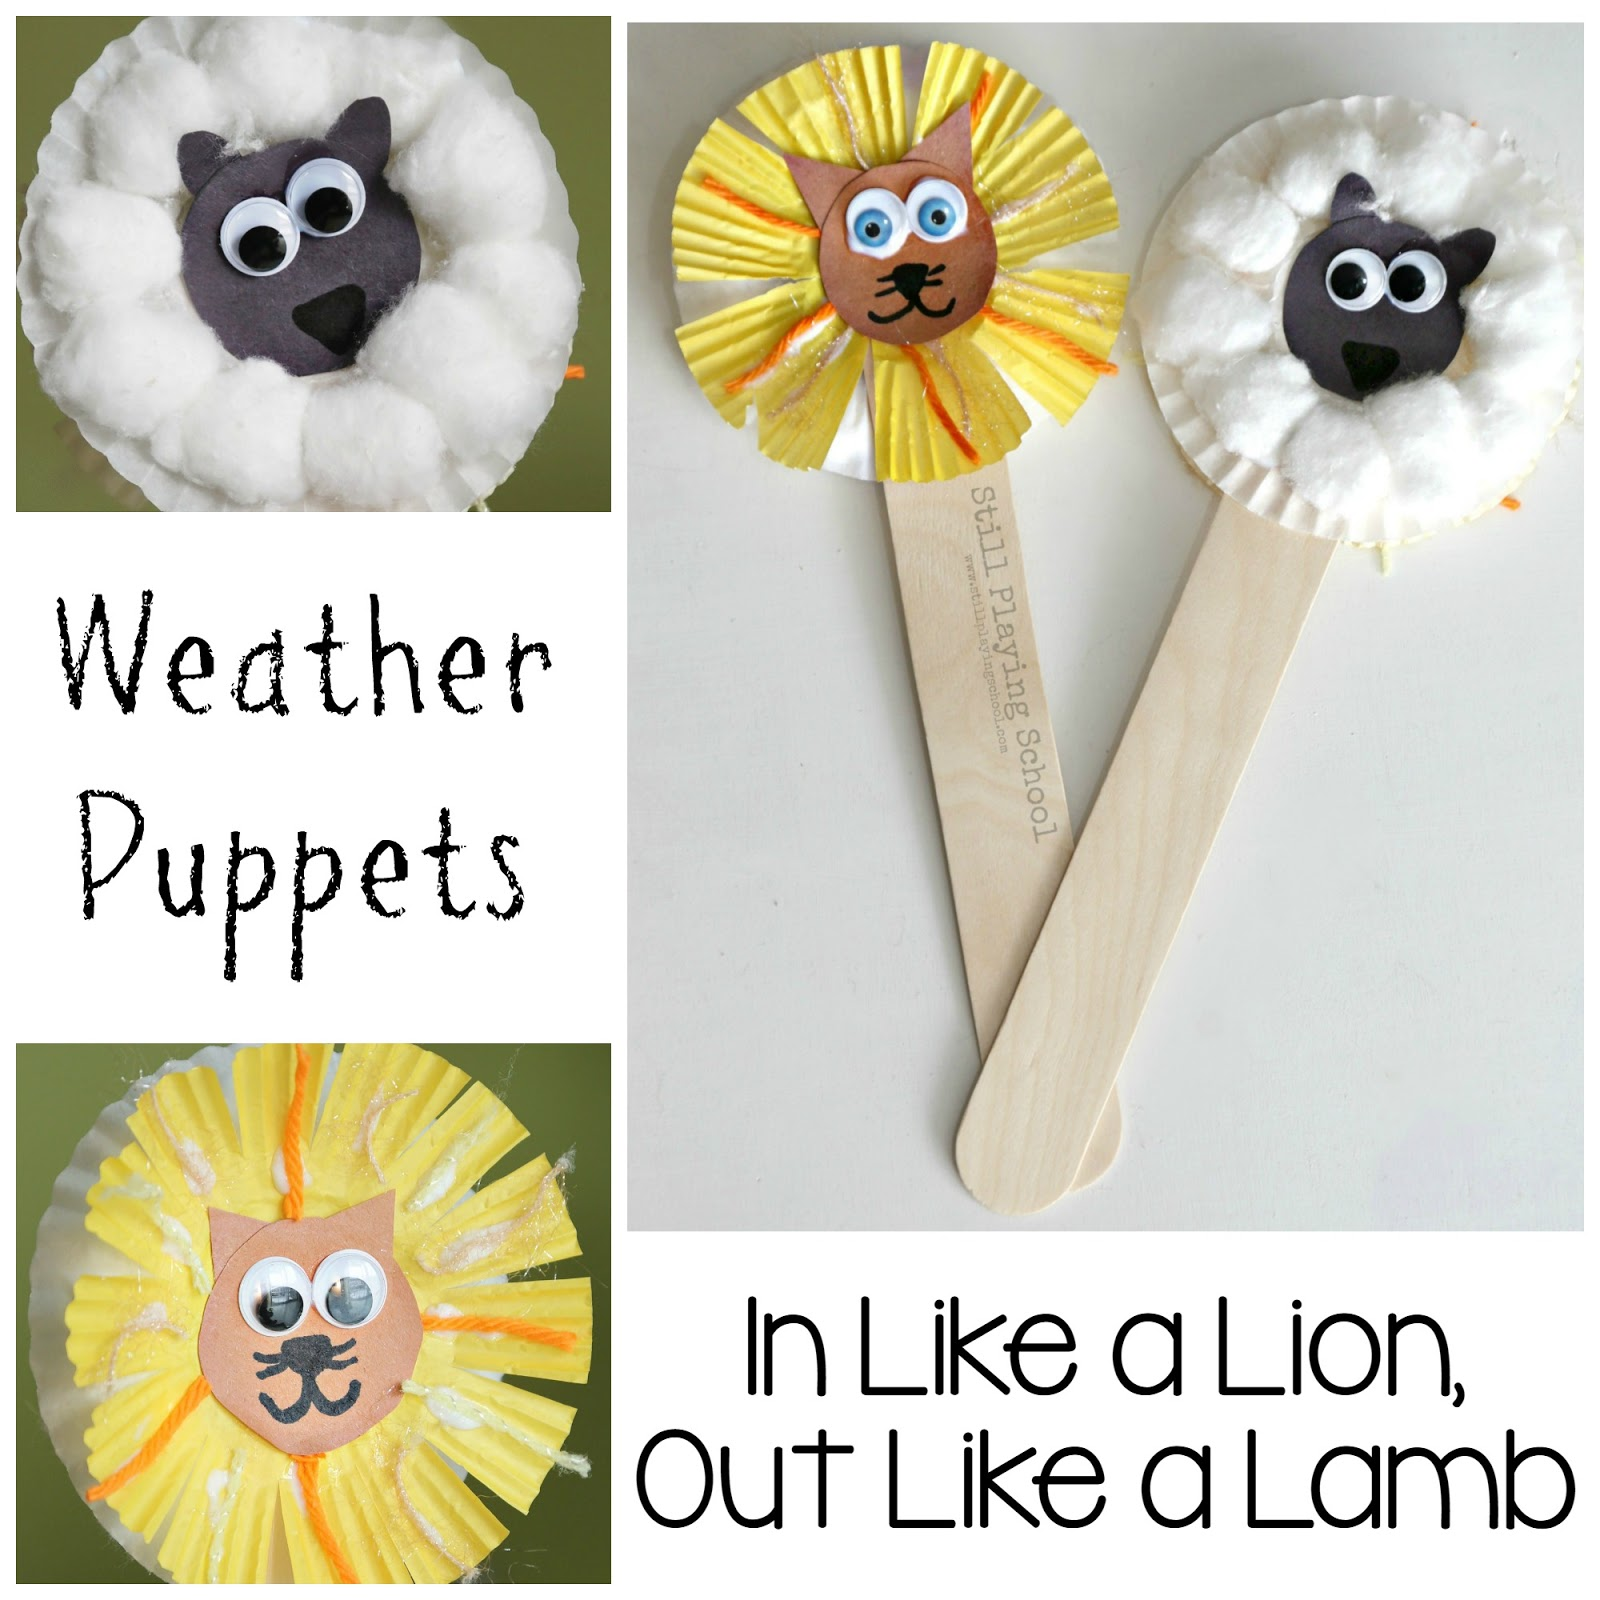 Lion And Lamb Puppets Still Playing School